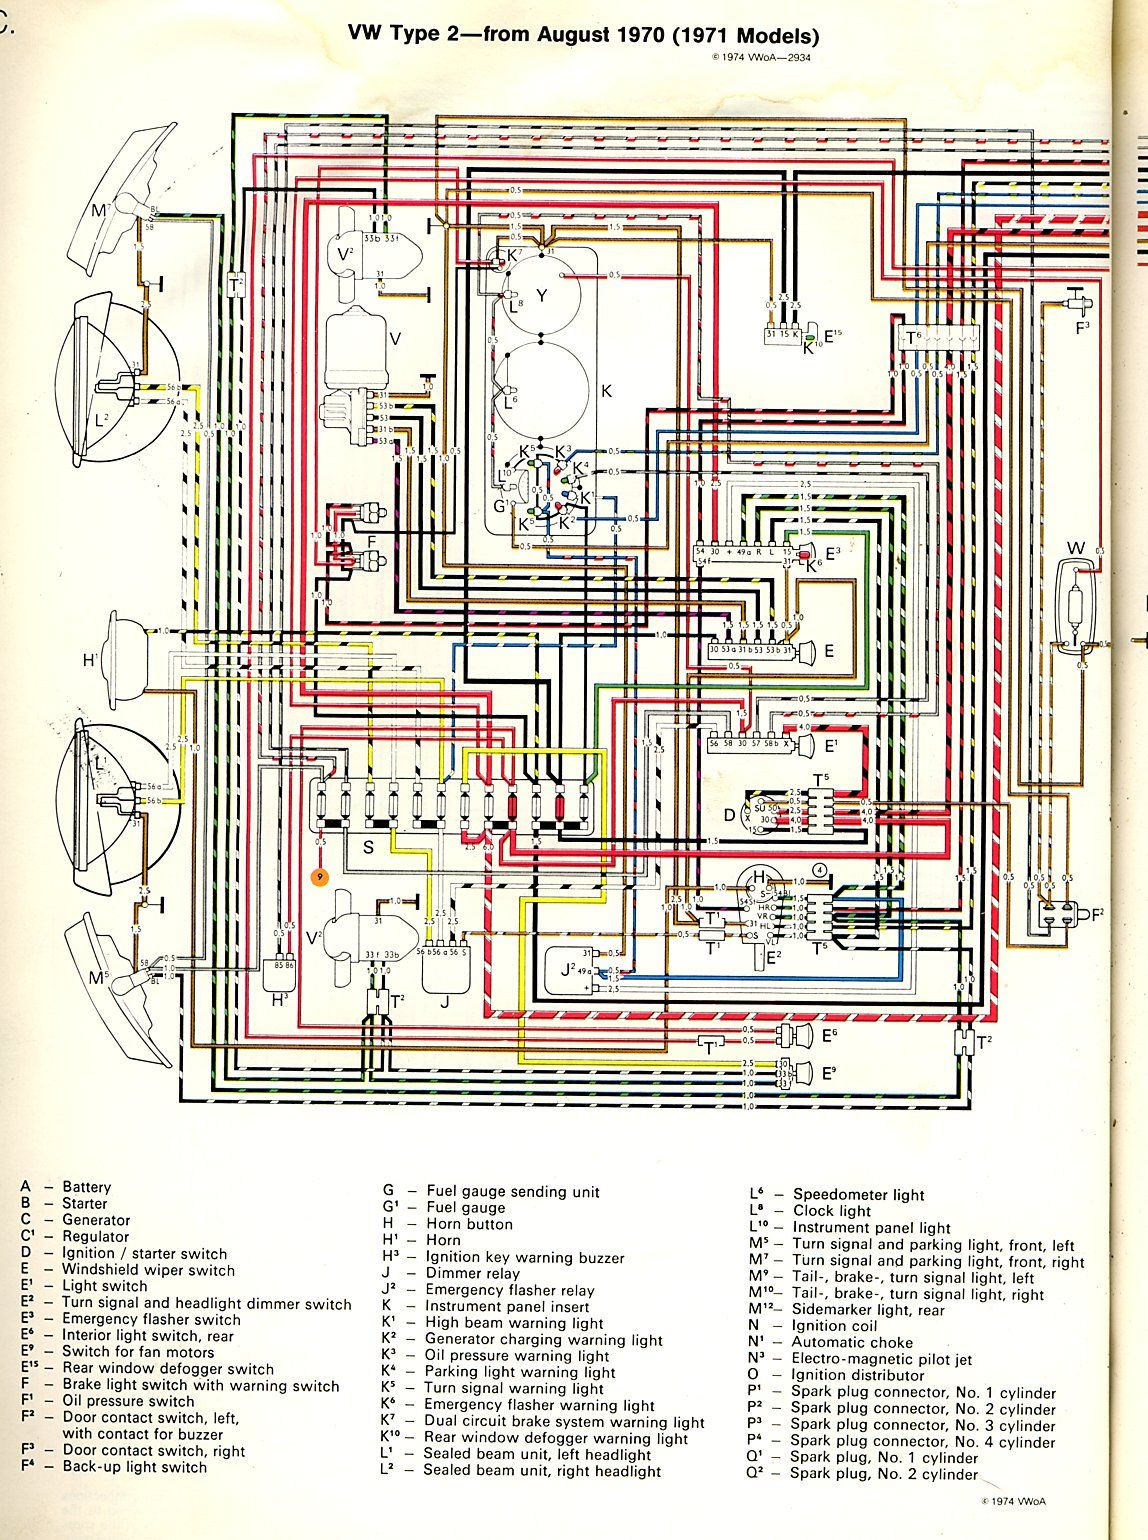 26730f3f6ceb3f1e1b50646c57249616 1971 bus wiring diagram thegoldenbug com stuff to try 1971 vw beetle wiring diagram at aneh.co